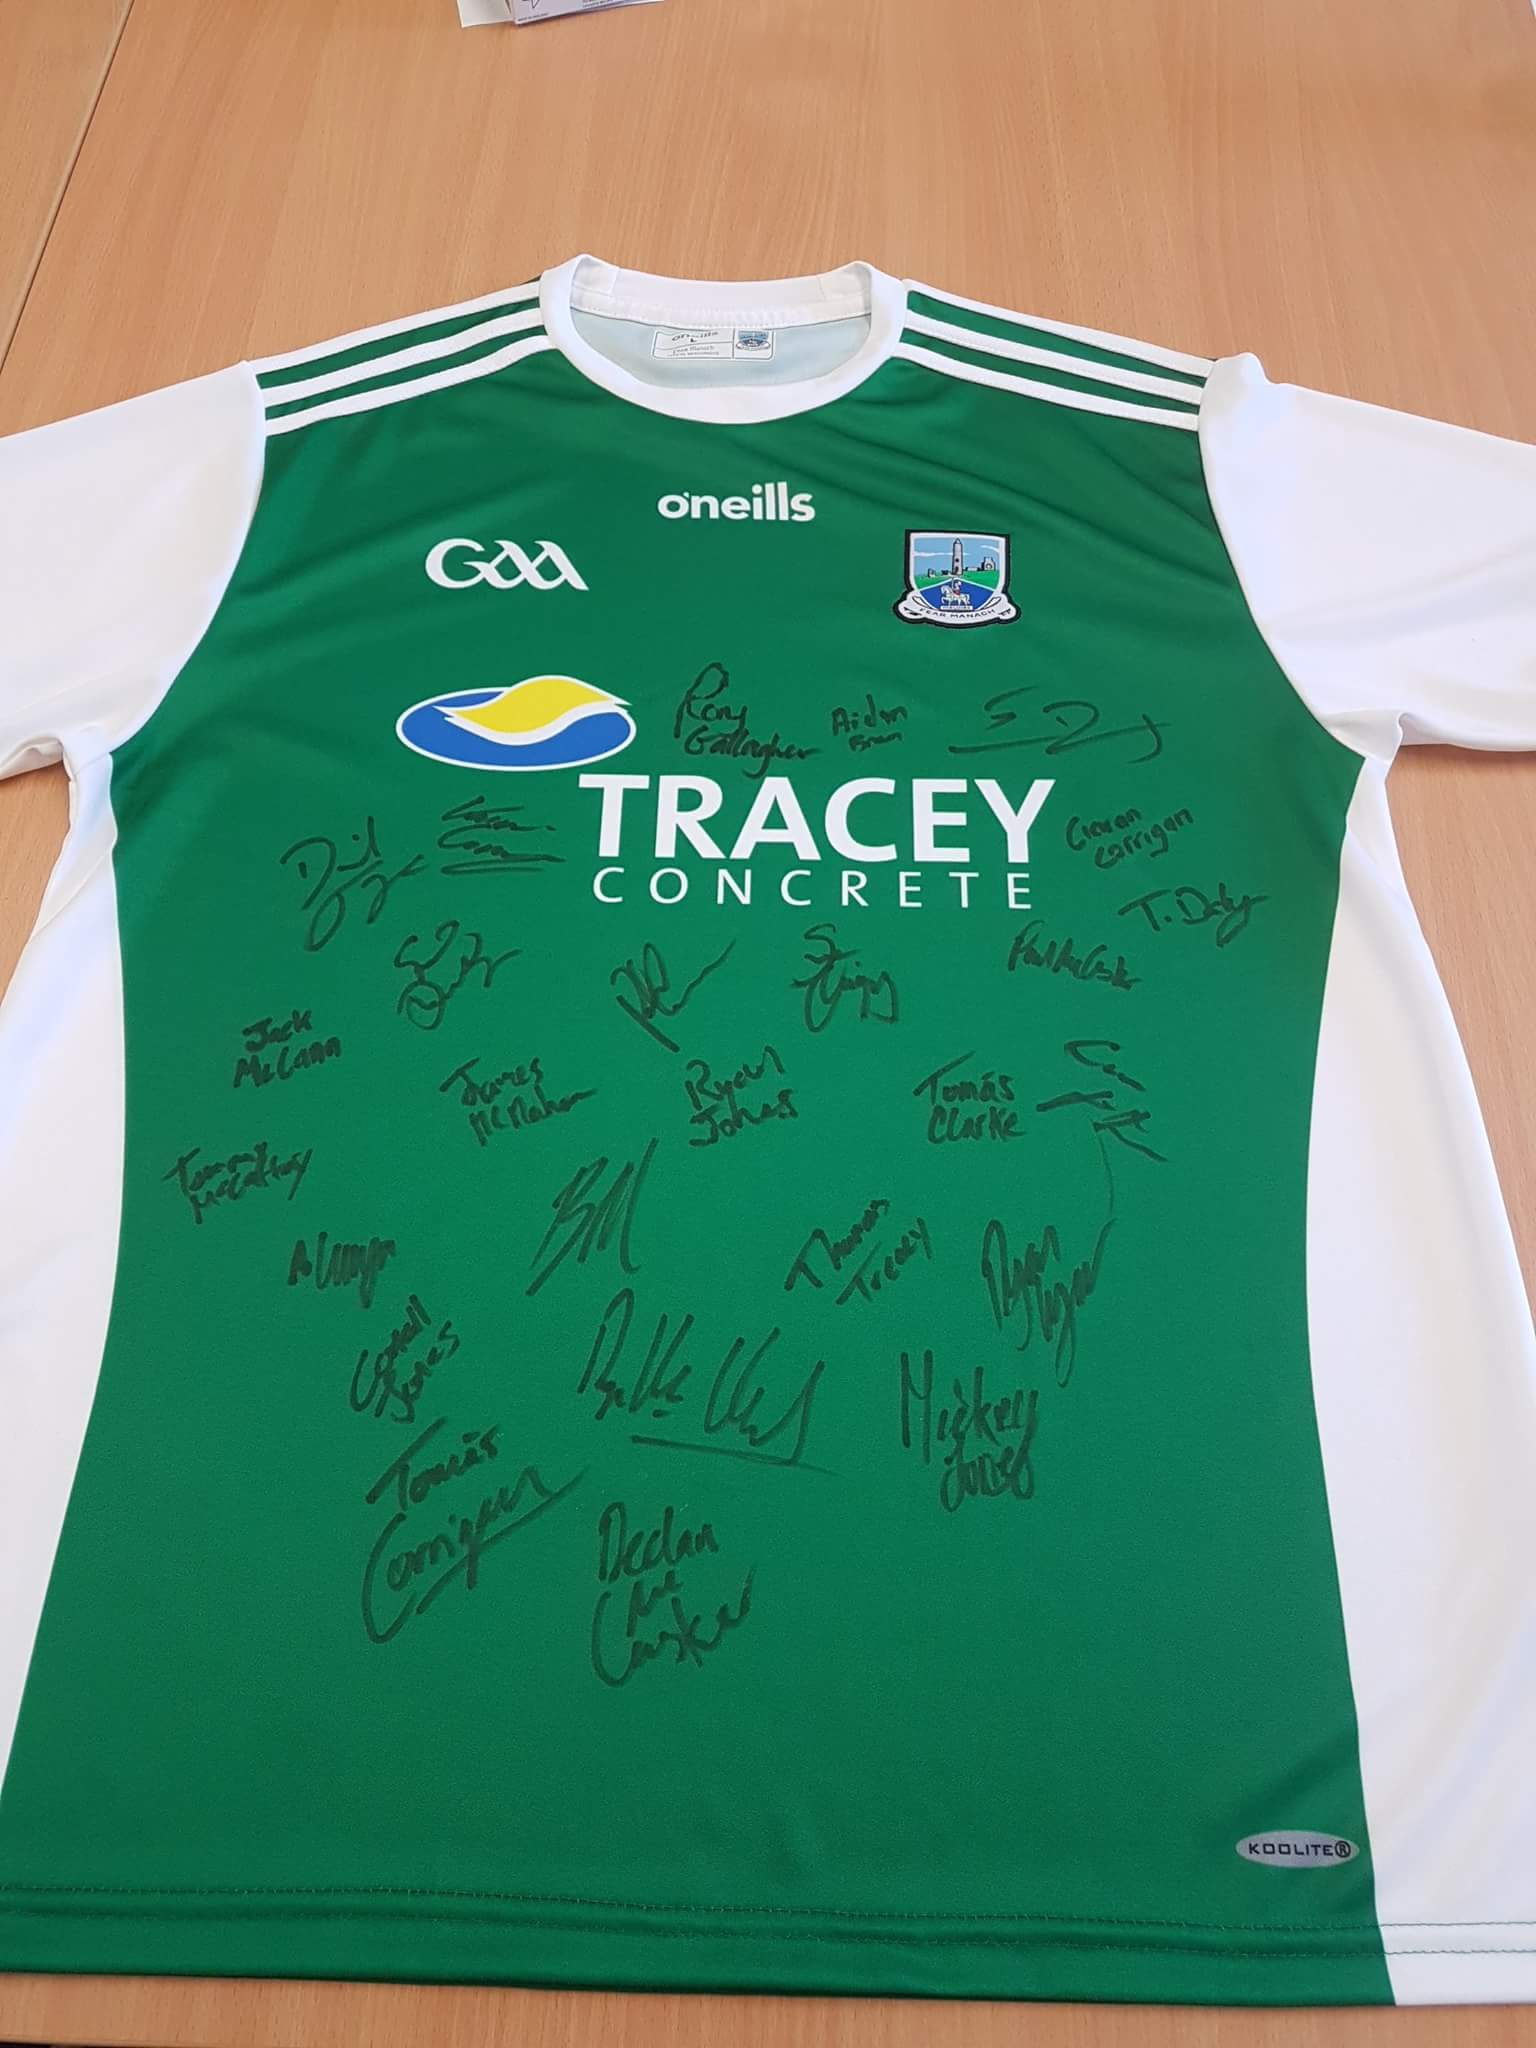 Signed Fermanagb shirt